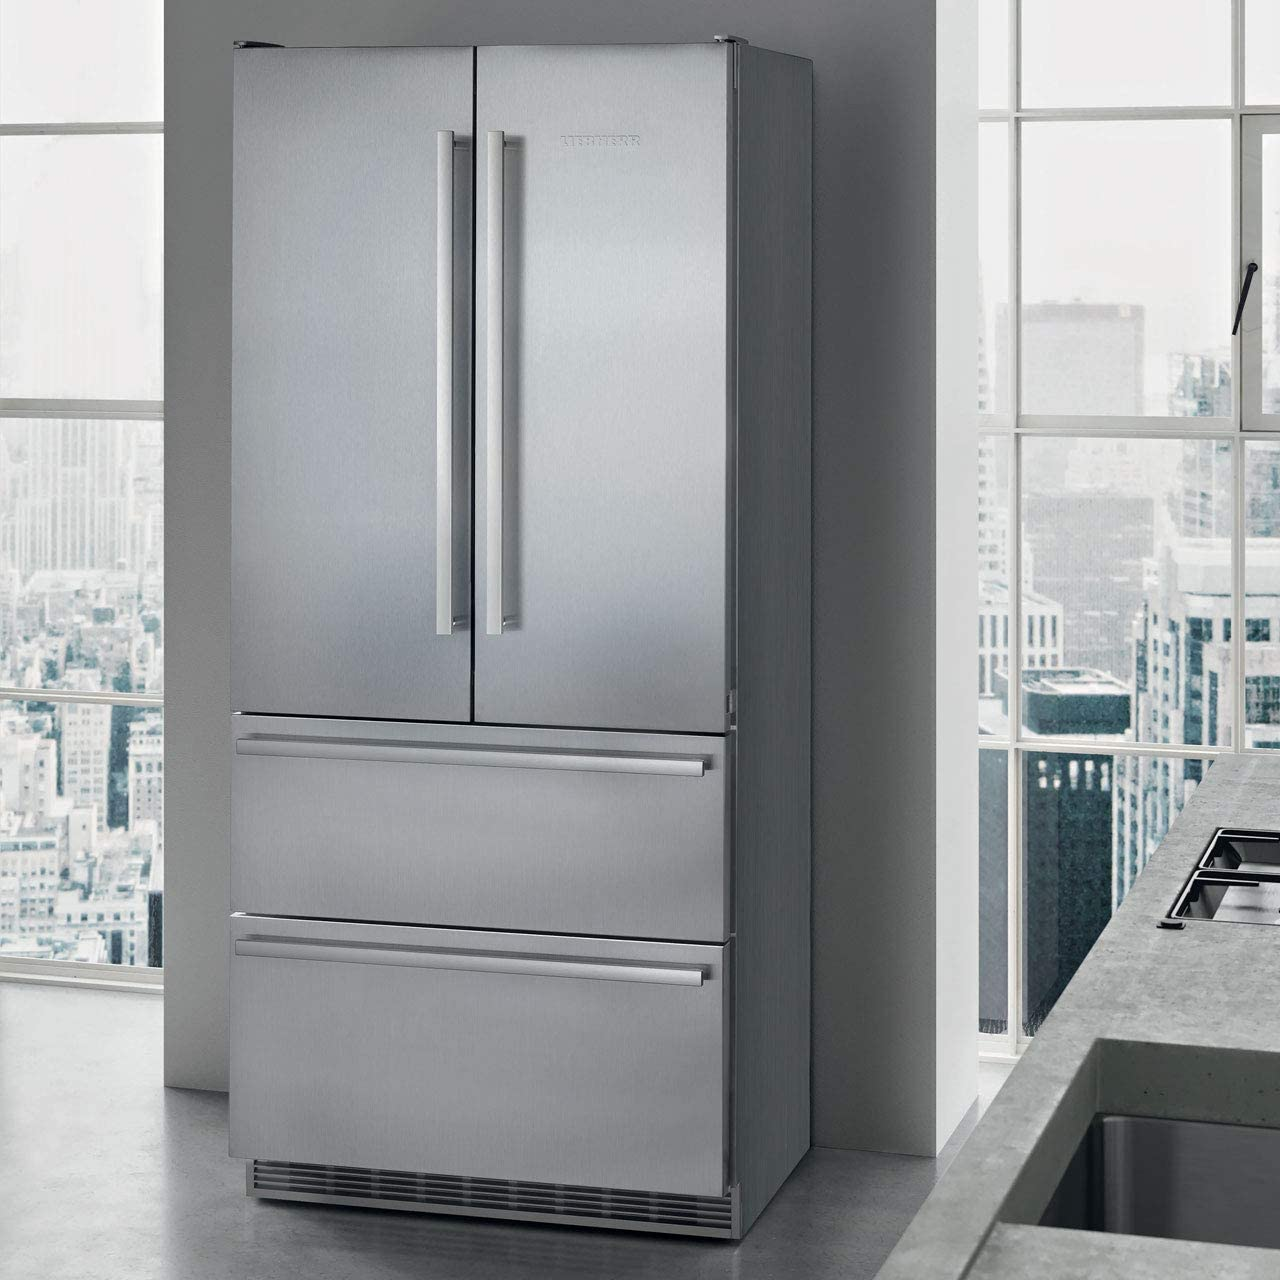 Liebherr CBNes 6256 nevera puerta lado a lado Independiente Acero inoxidable 471 L A++ - Frigorífico side-by-side (Independiente, Acero inoxidable, Puerta francesa, LED, Tocar, Acero inoxidable): Amazon.es: Hogar